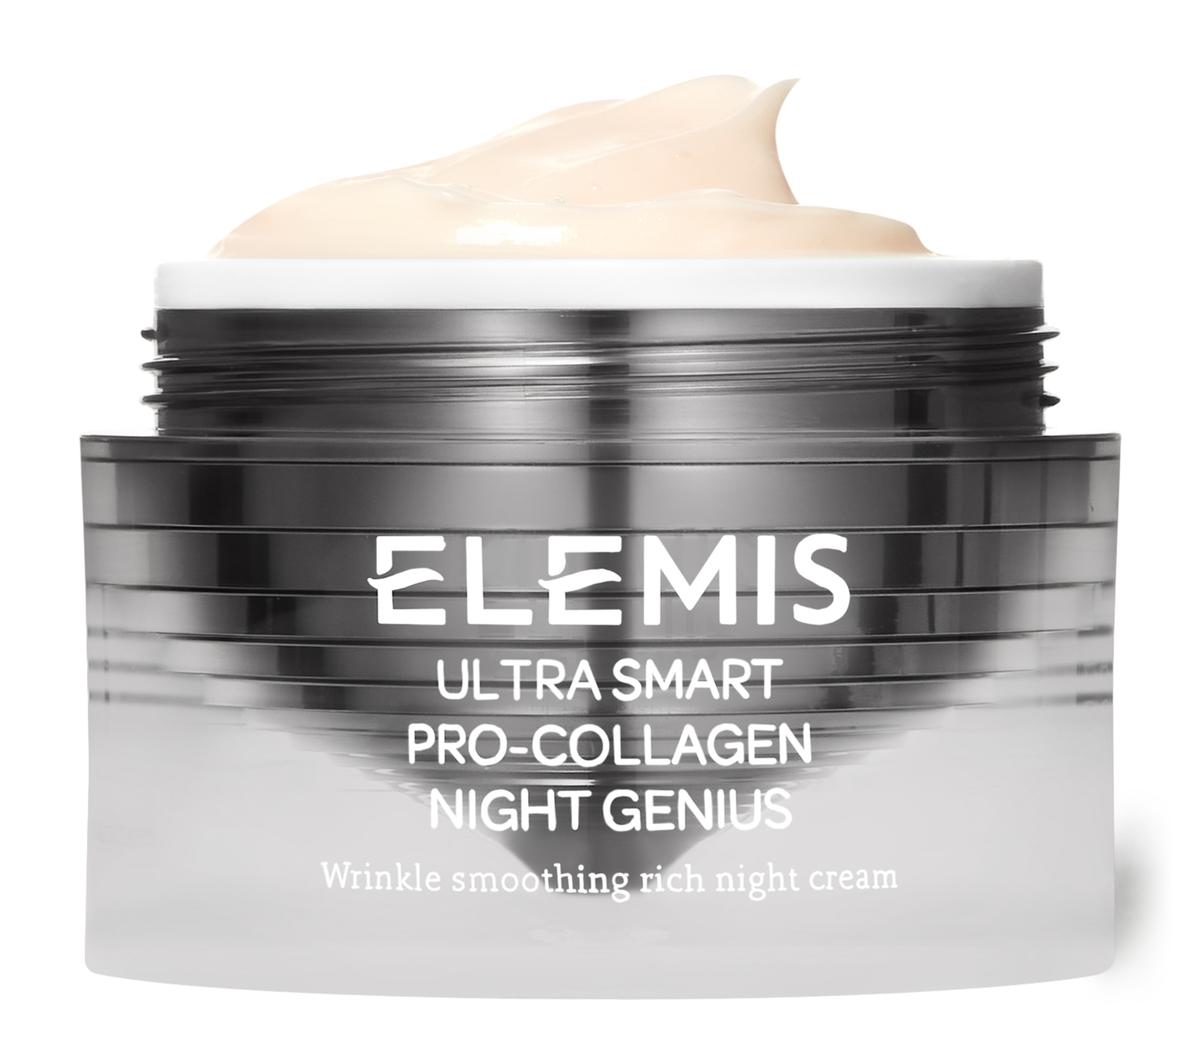 Elemis' Pro-Collagen range is known for harnessing the power of specialised marine algae